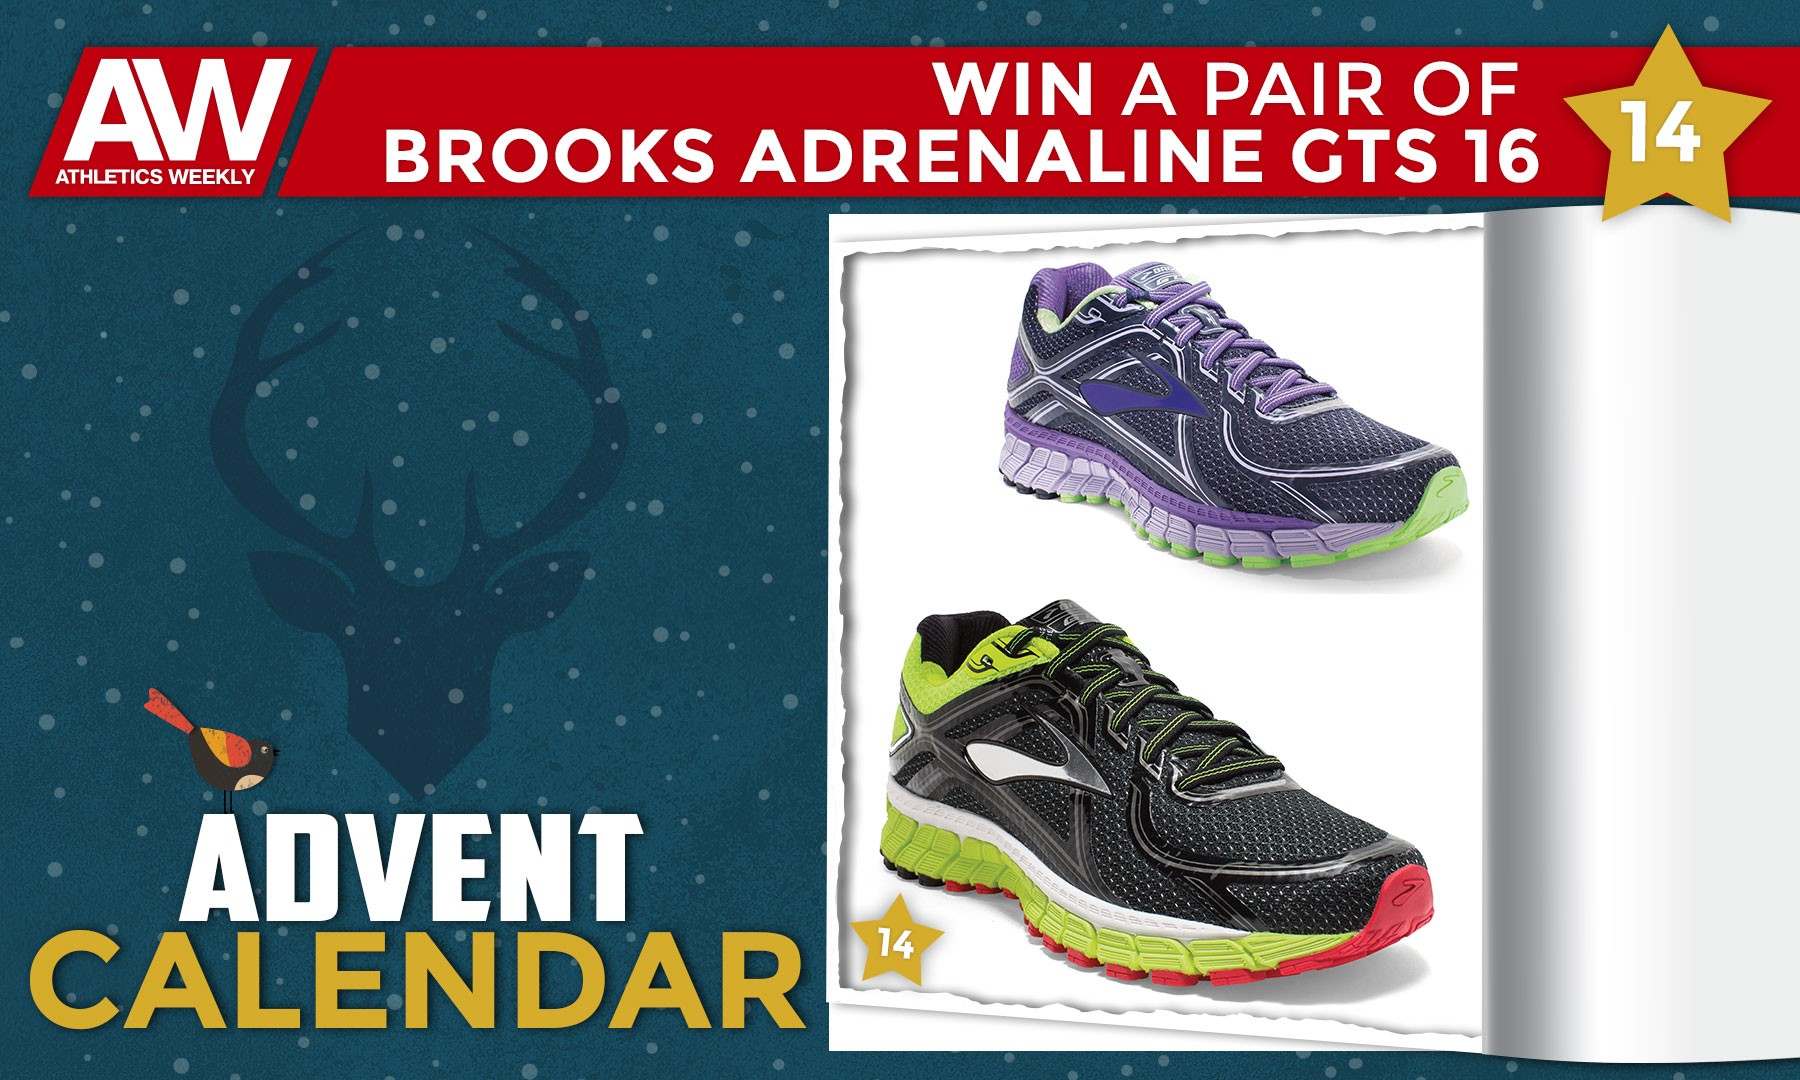 Win a pair of Brooks Adrenaline GTS 16